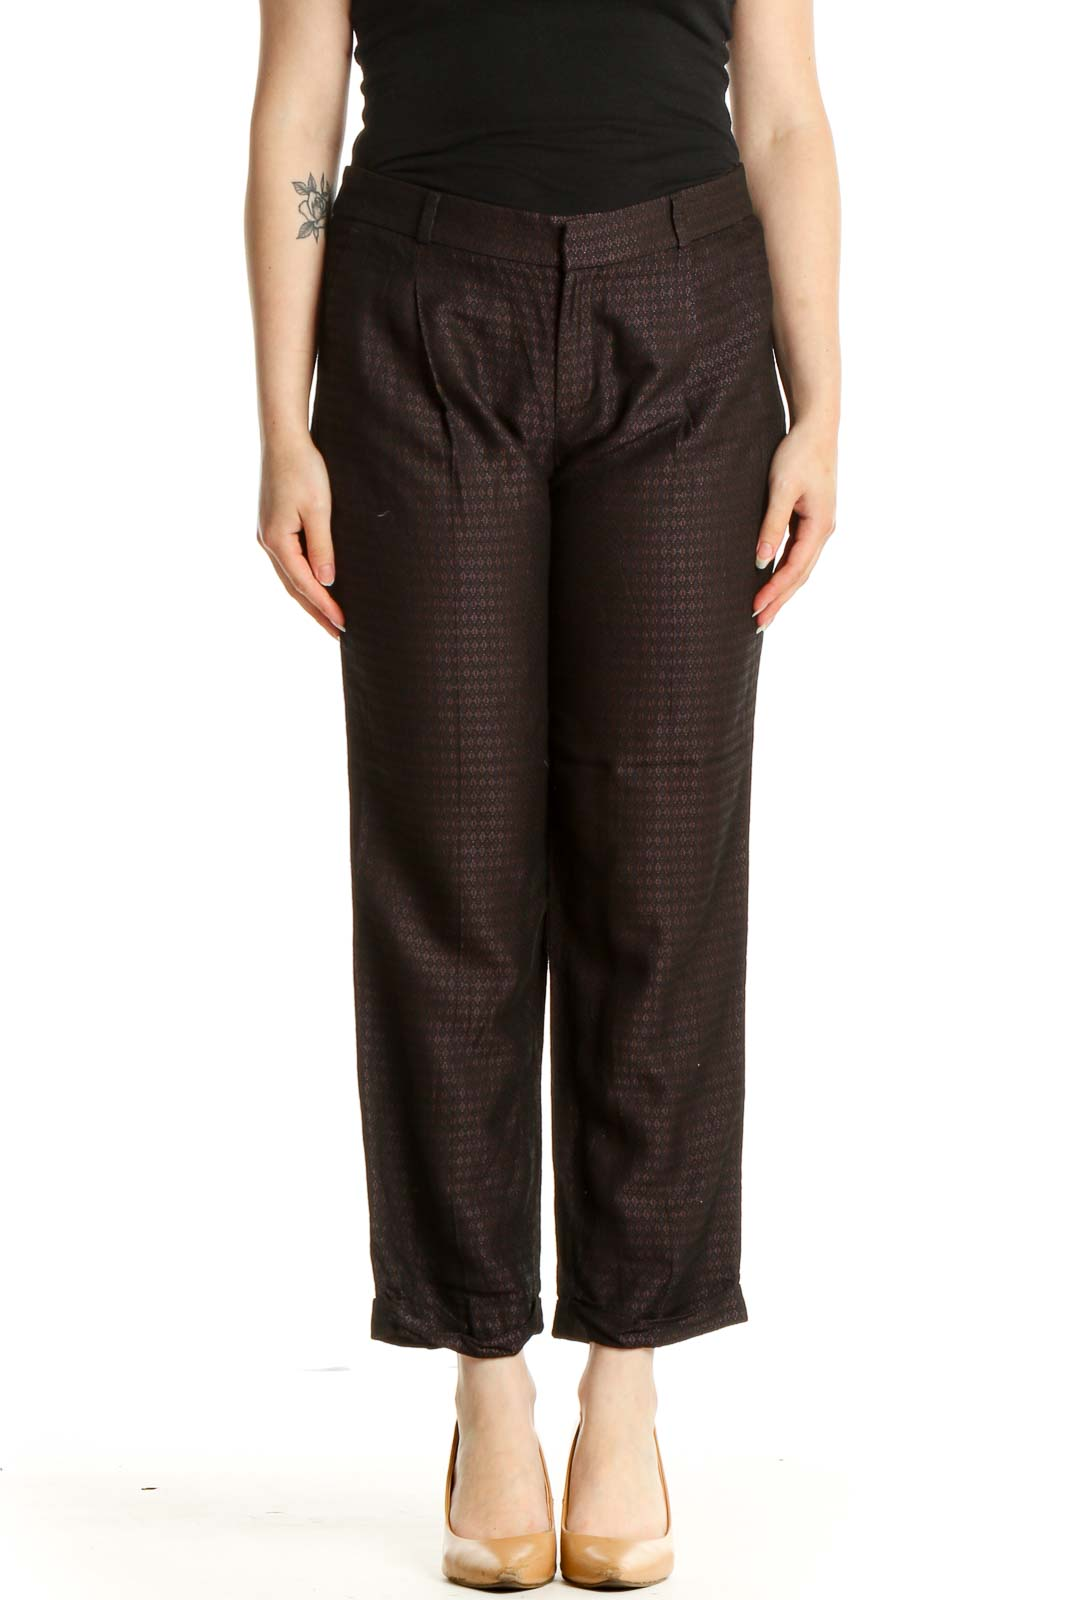 Black Textured Casual Trousers Front